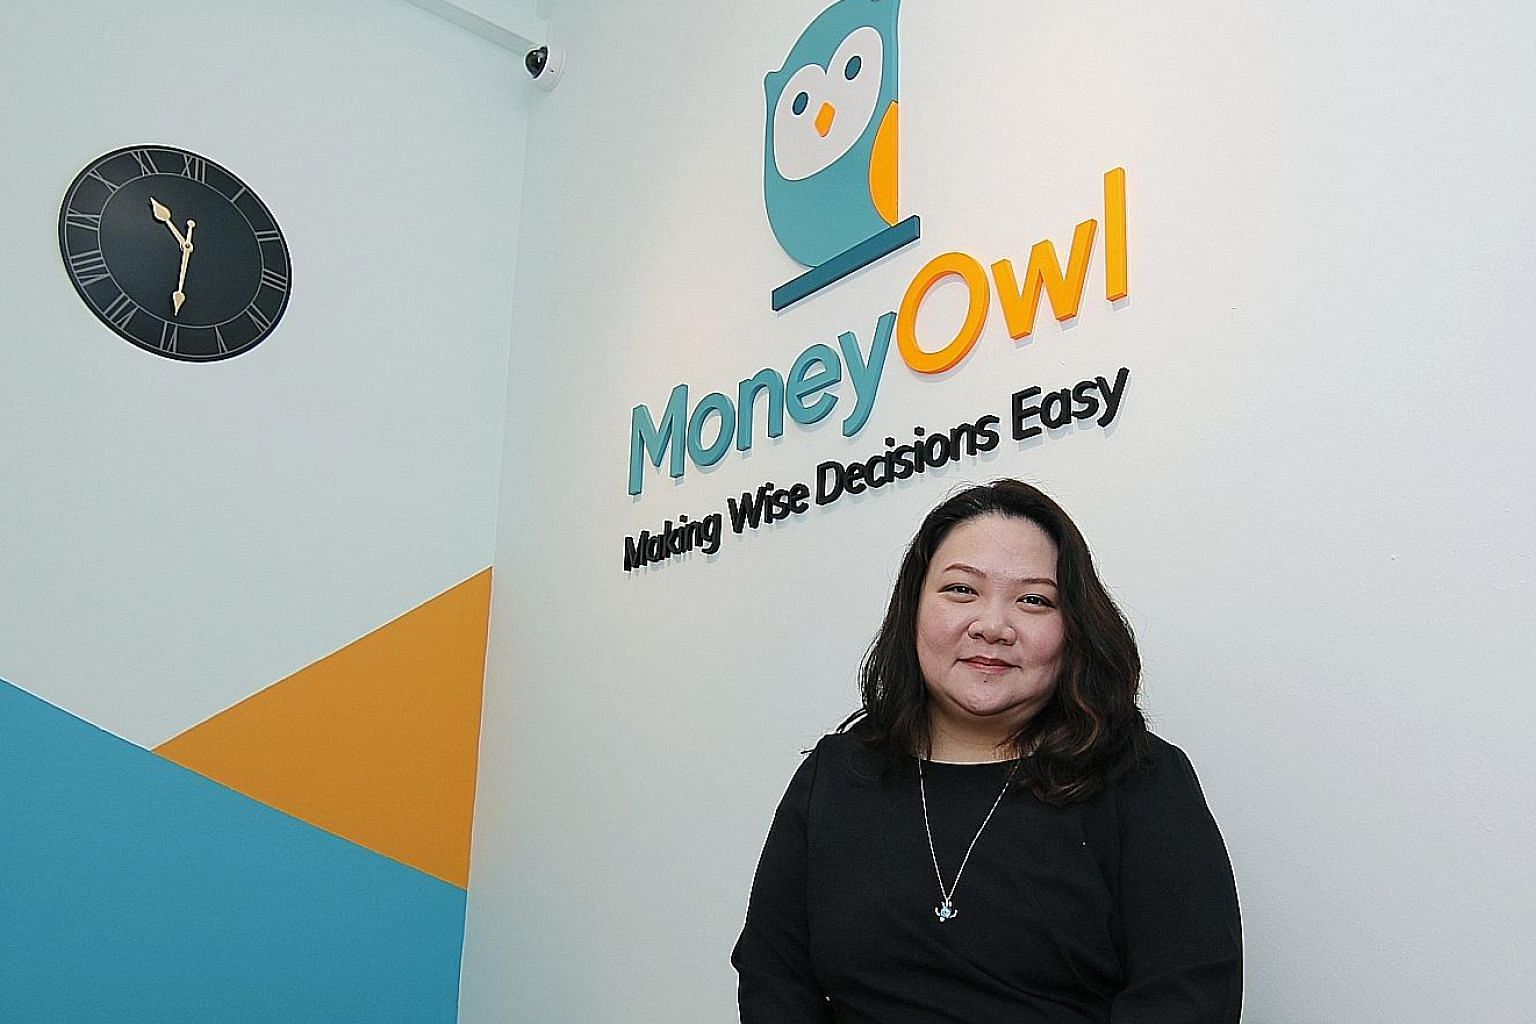 Singaporeans are not planning well because they are being sold on products and often on fear, rather than receiving holistic and impartial advice, says MoneyOwl's chief executive Chuin Ting Weber.